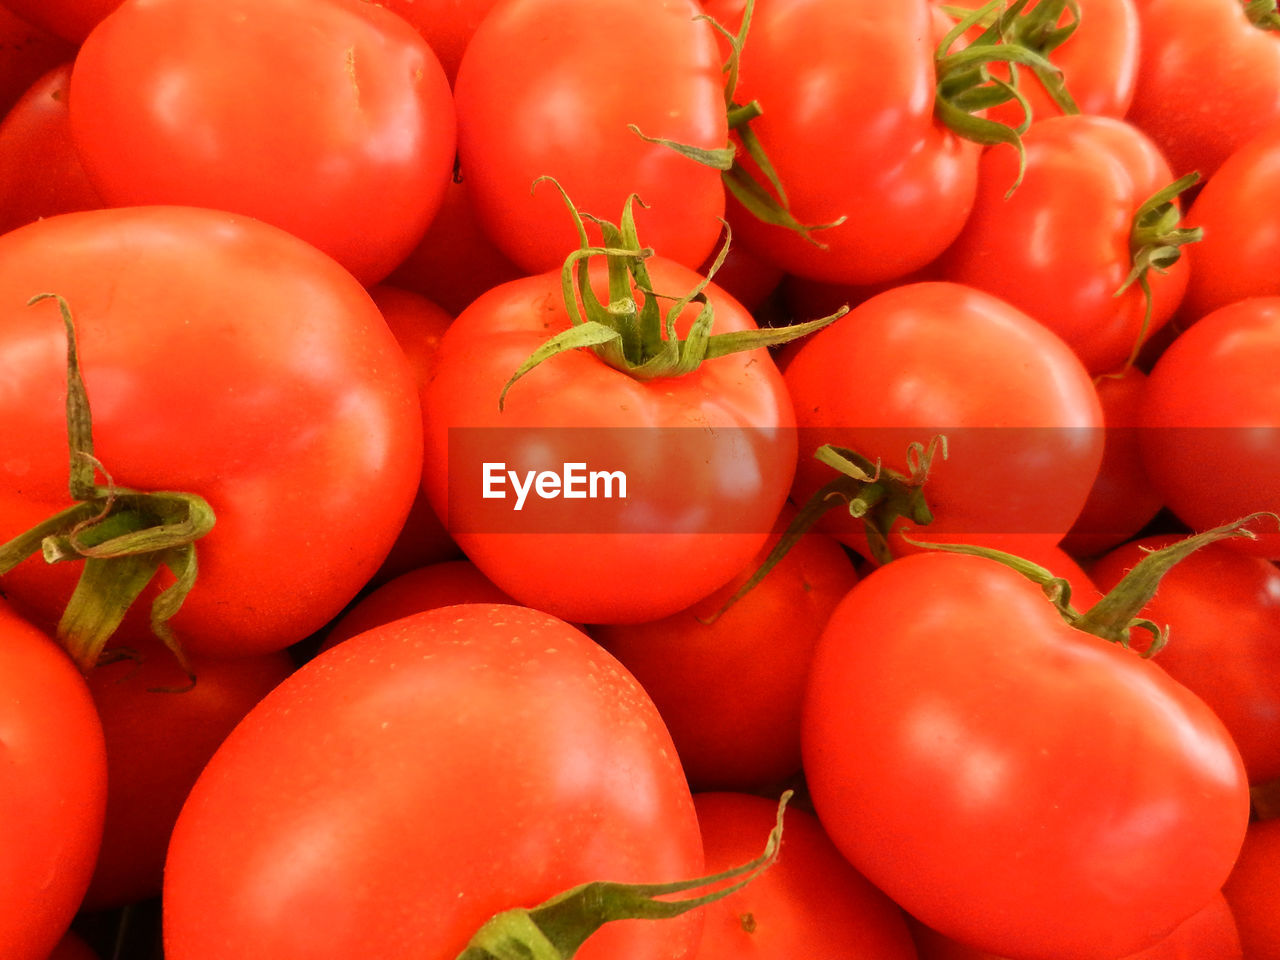 vegetable, food and drink, food, red, healthy eating, freshness, wellbeing, large group of objects, full frame, tomato, close-up, still life, backgrounds, no people, for sale, raw food, fruit, plant stem, market, pepper, sale, ripe